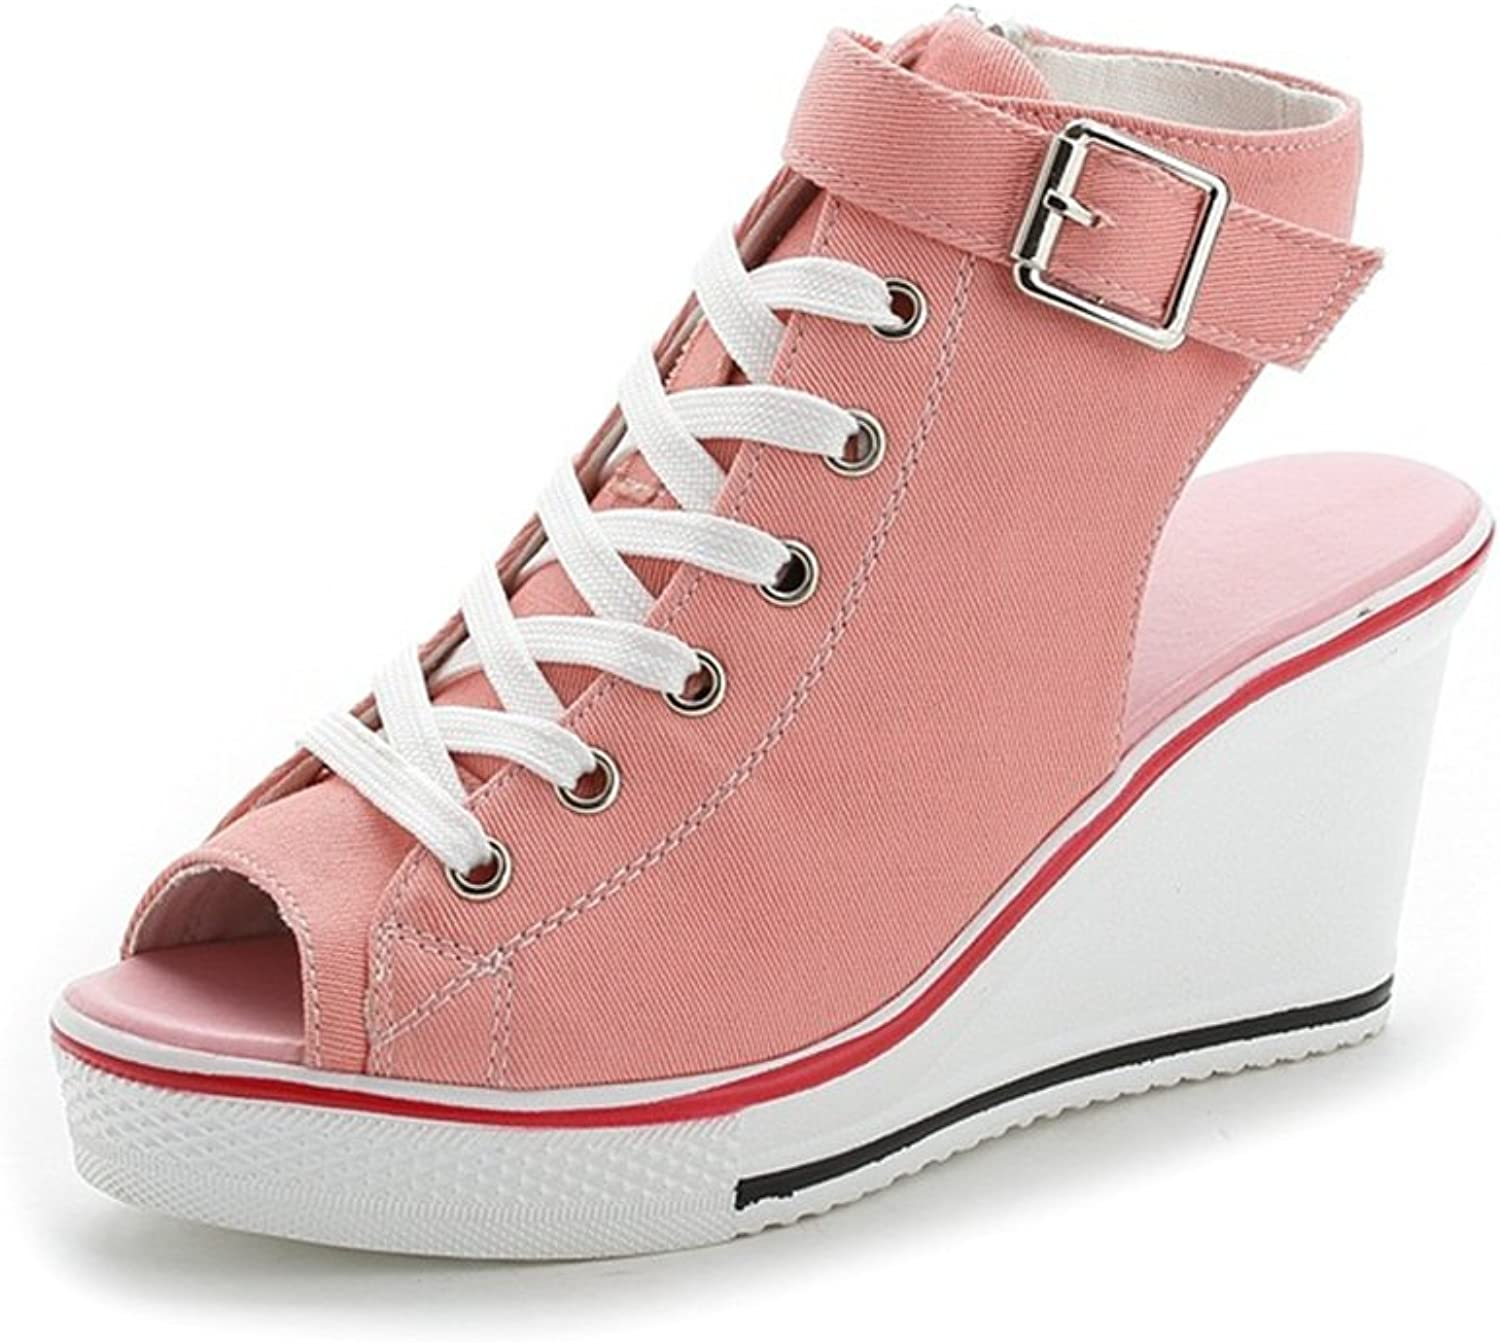 FUN.S Pump shoes Women's Canvas High-Heeled shoes Wedge shoes,Fashion Sneakers